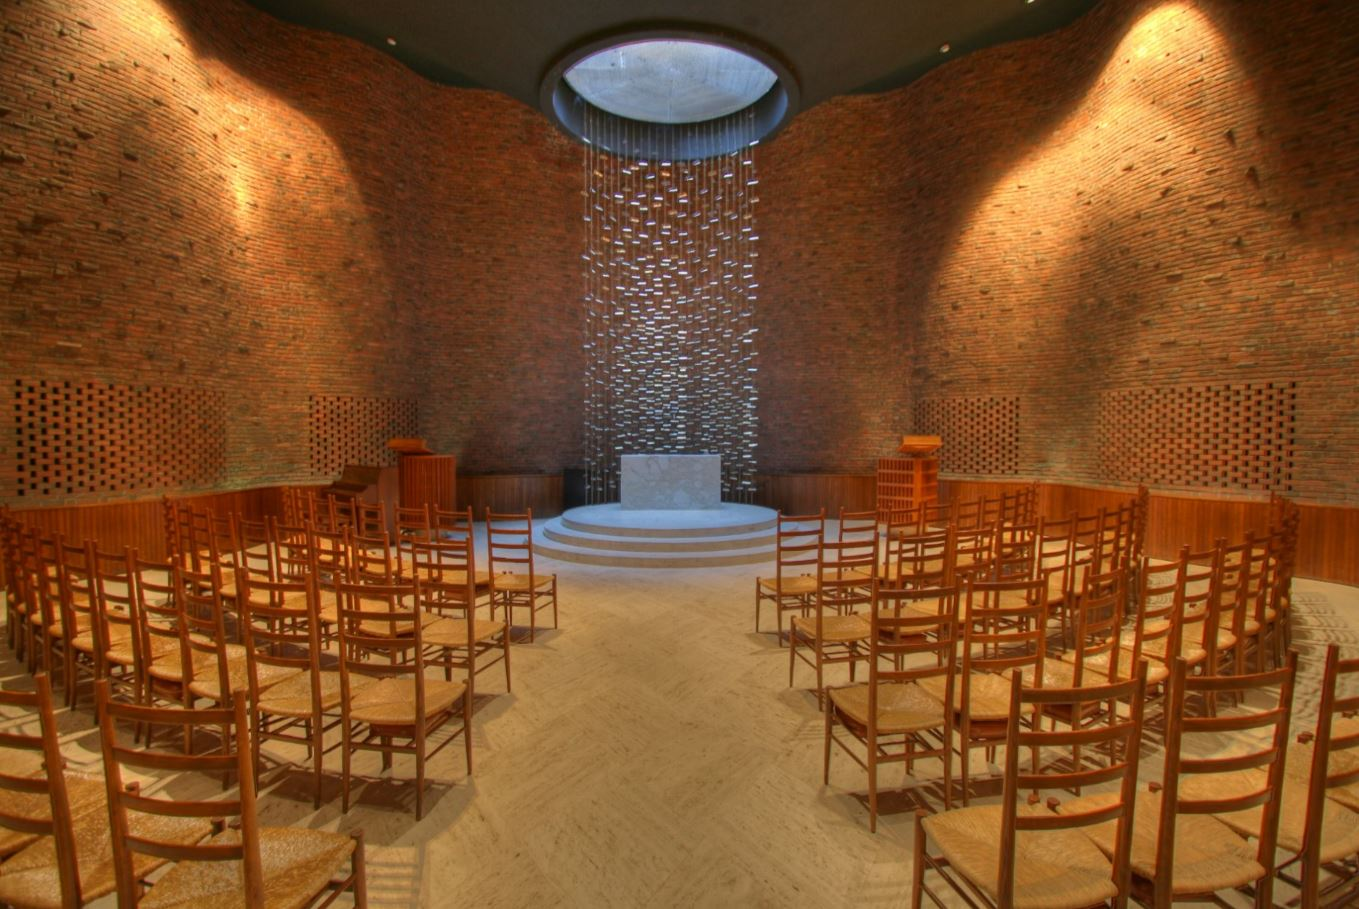 Kresge Chapel, MIT - Architect, Eero Saarinenphoto: archgened.oucreate.com